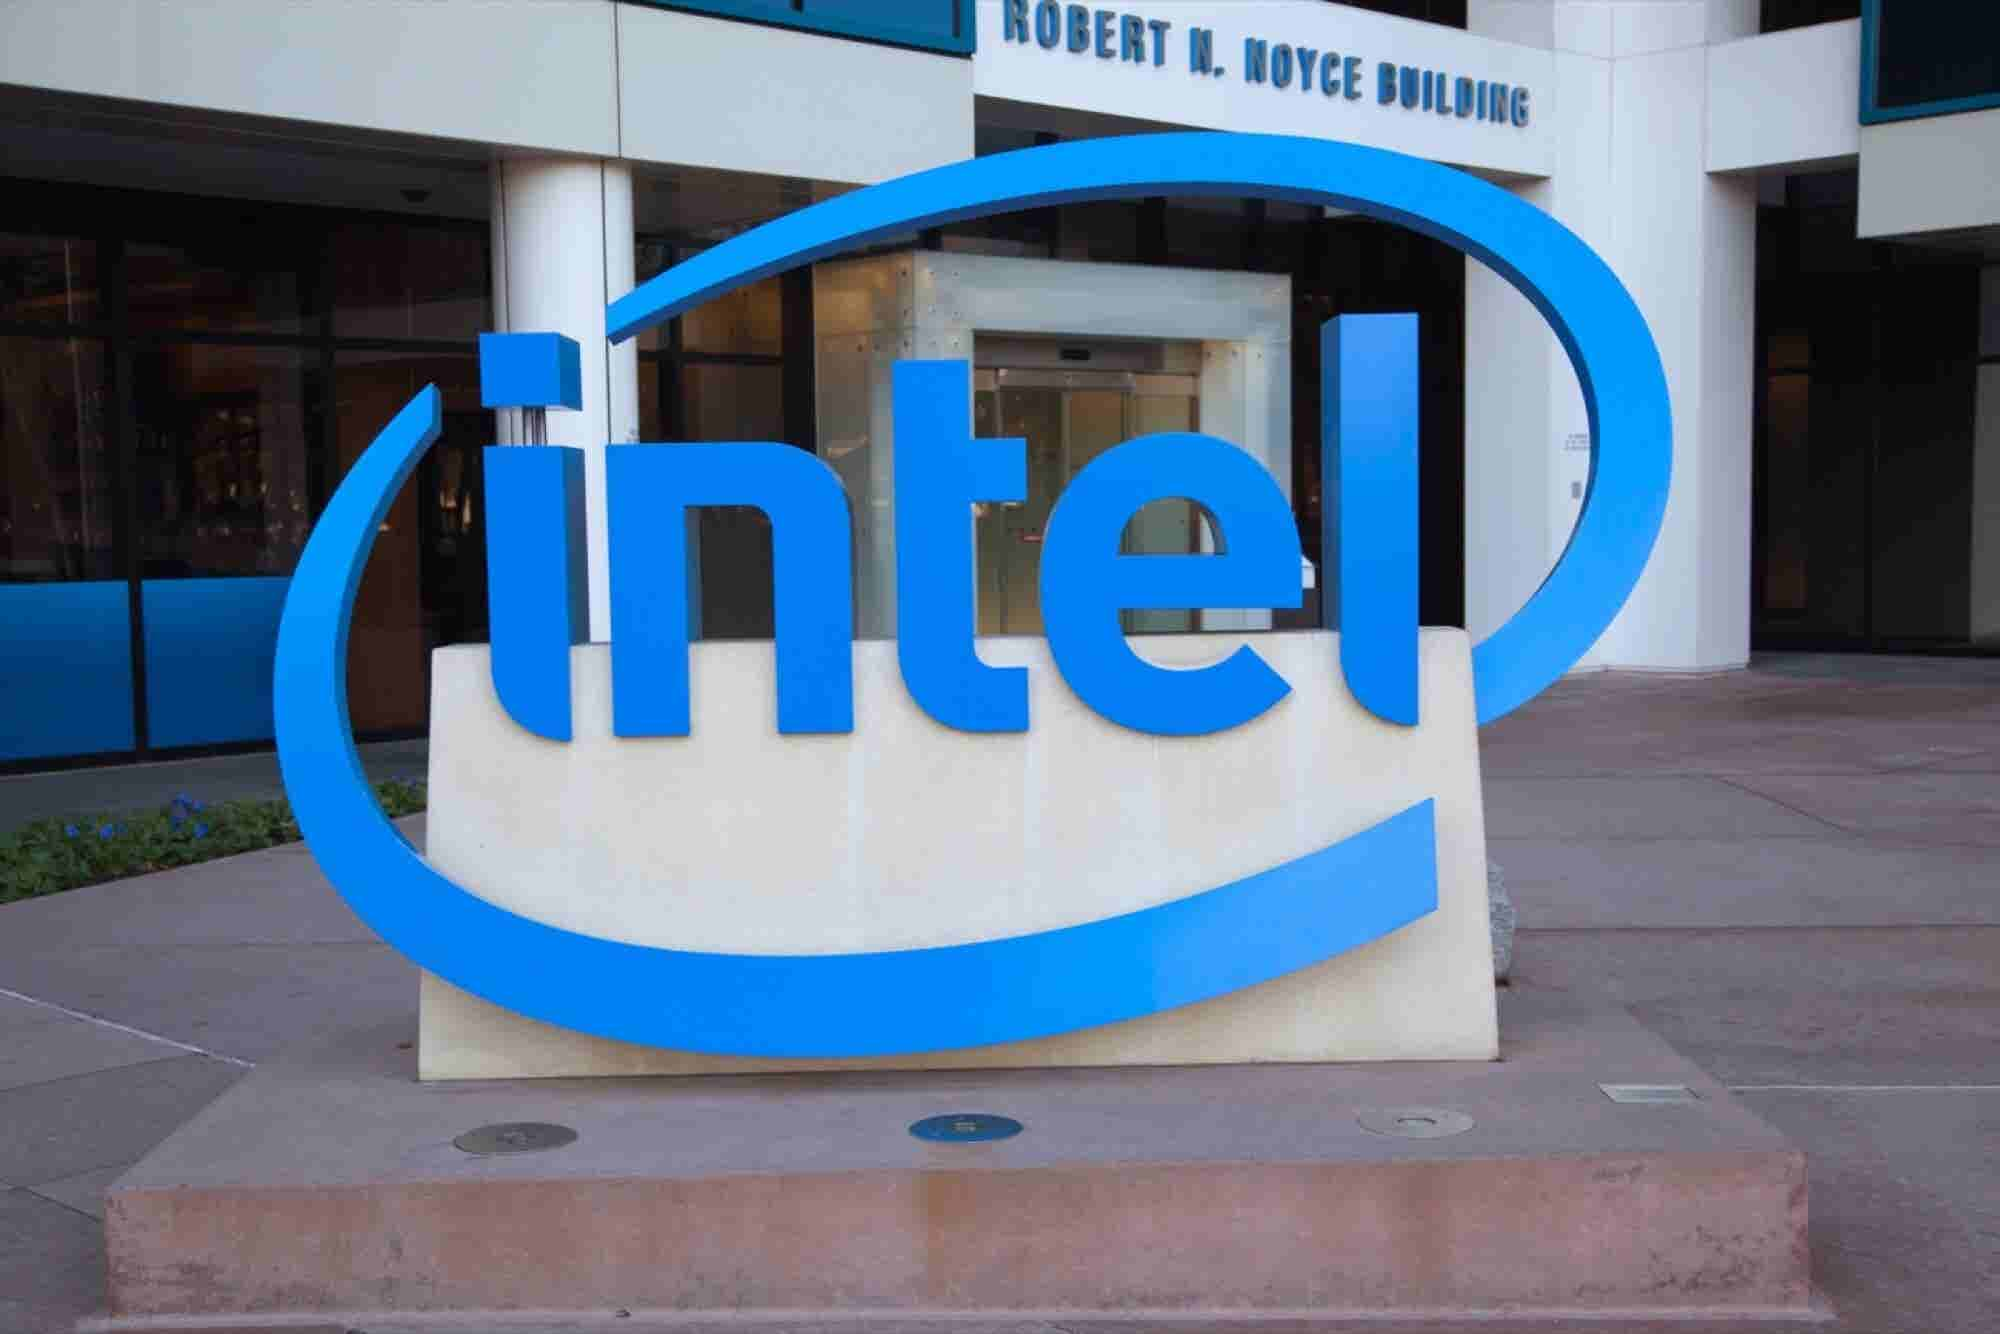 Intel to Cut Up to 12,000 Jobs Globally as PC Industry Declines